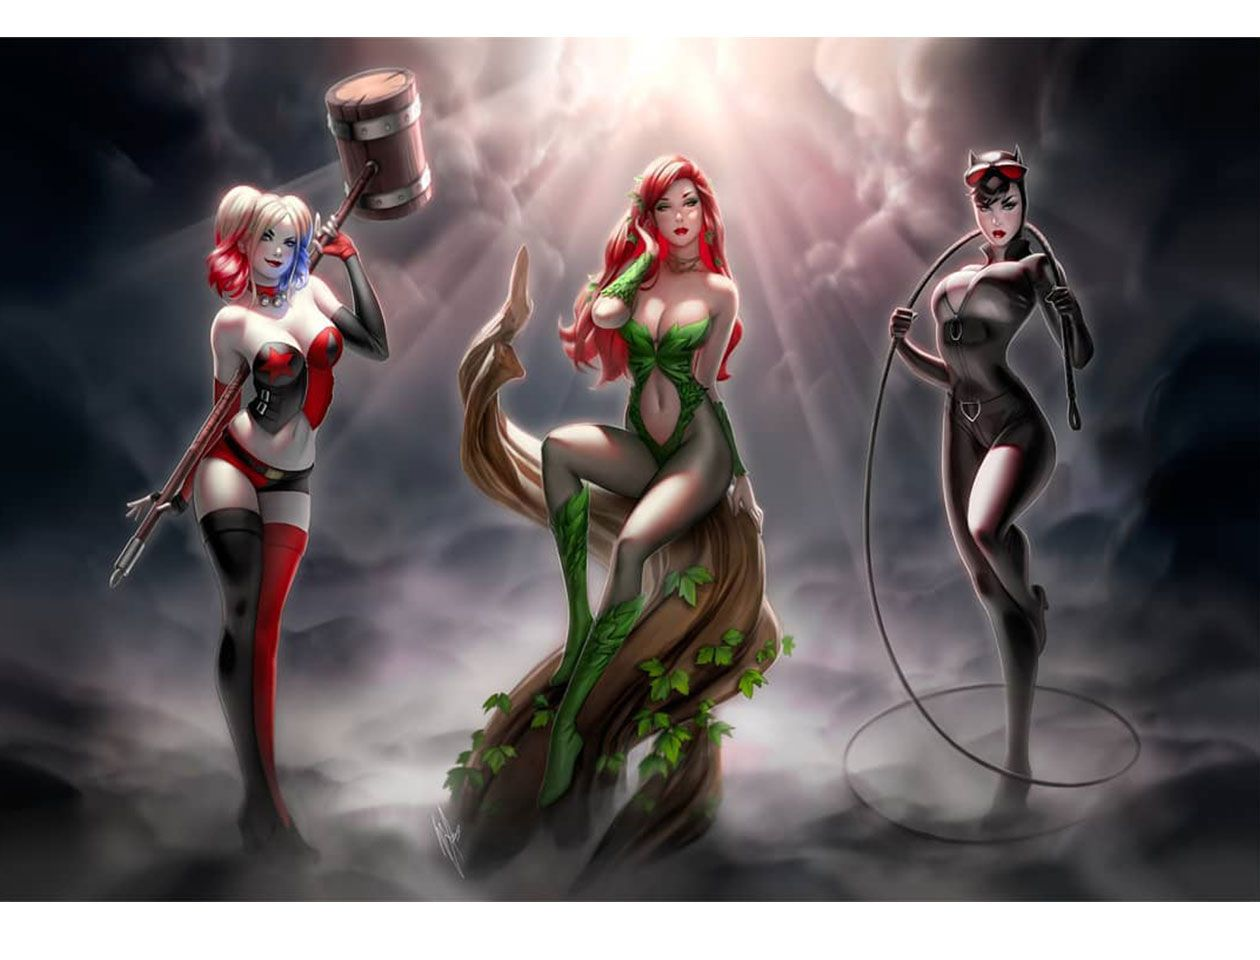 Batman Animated Limited Edition Convention Poster Art Print with the Girls